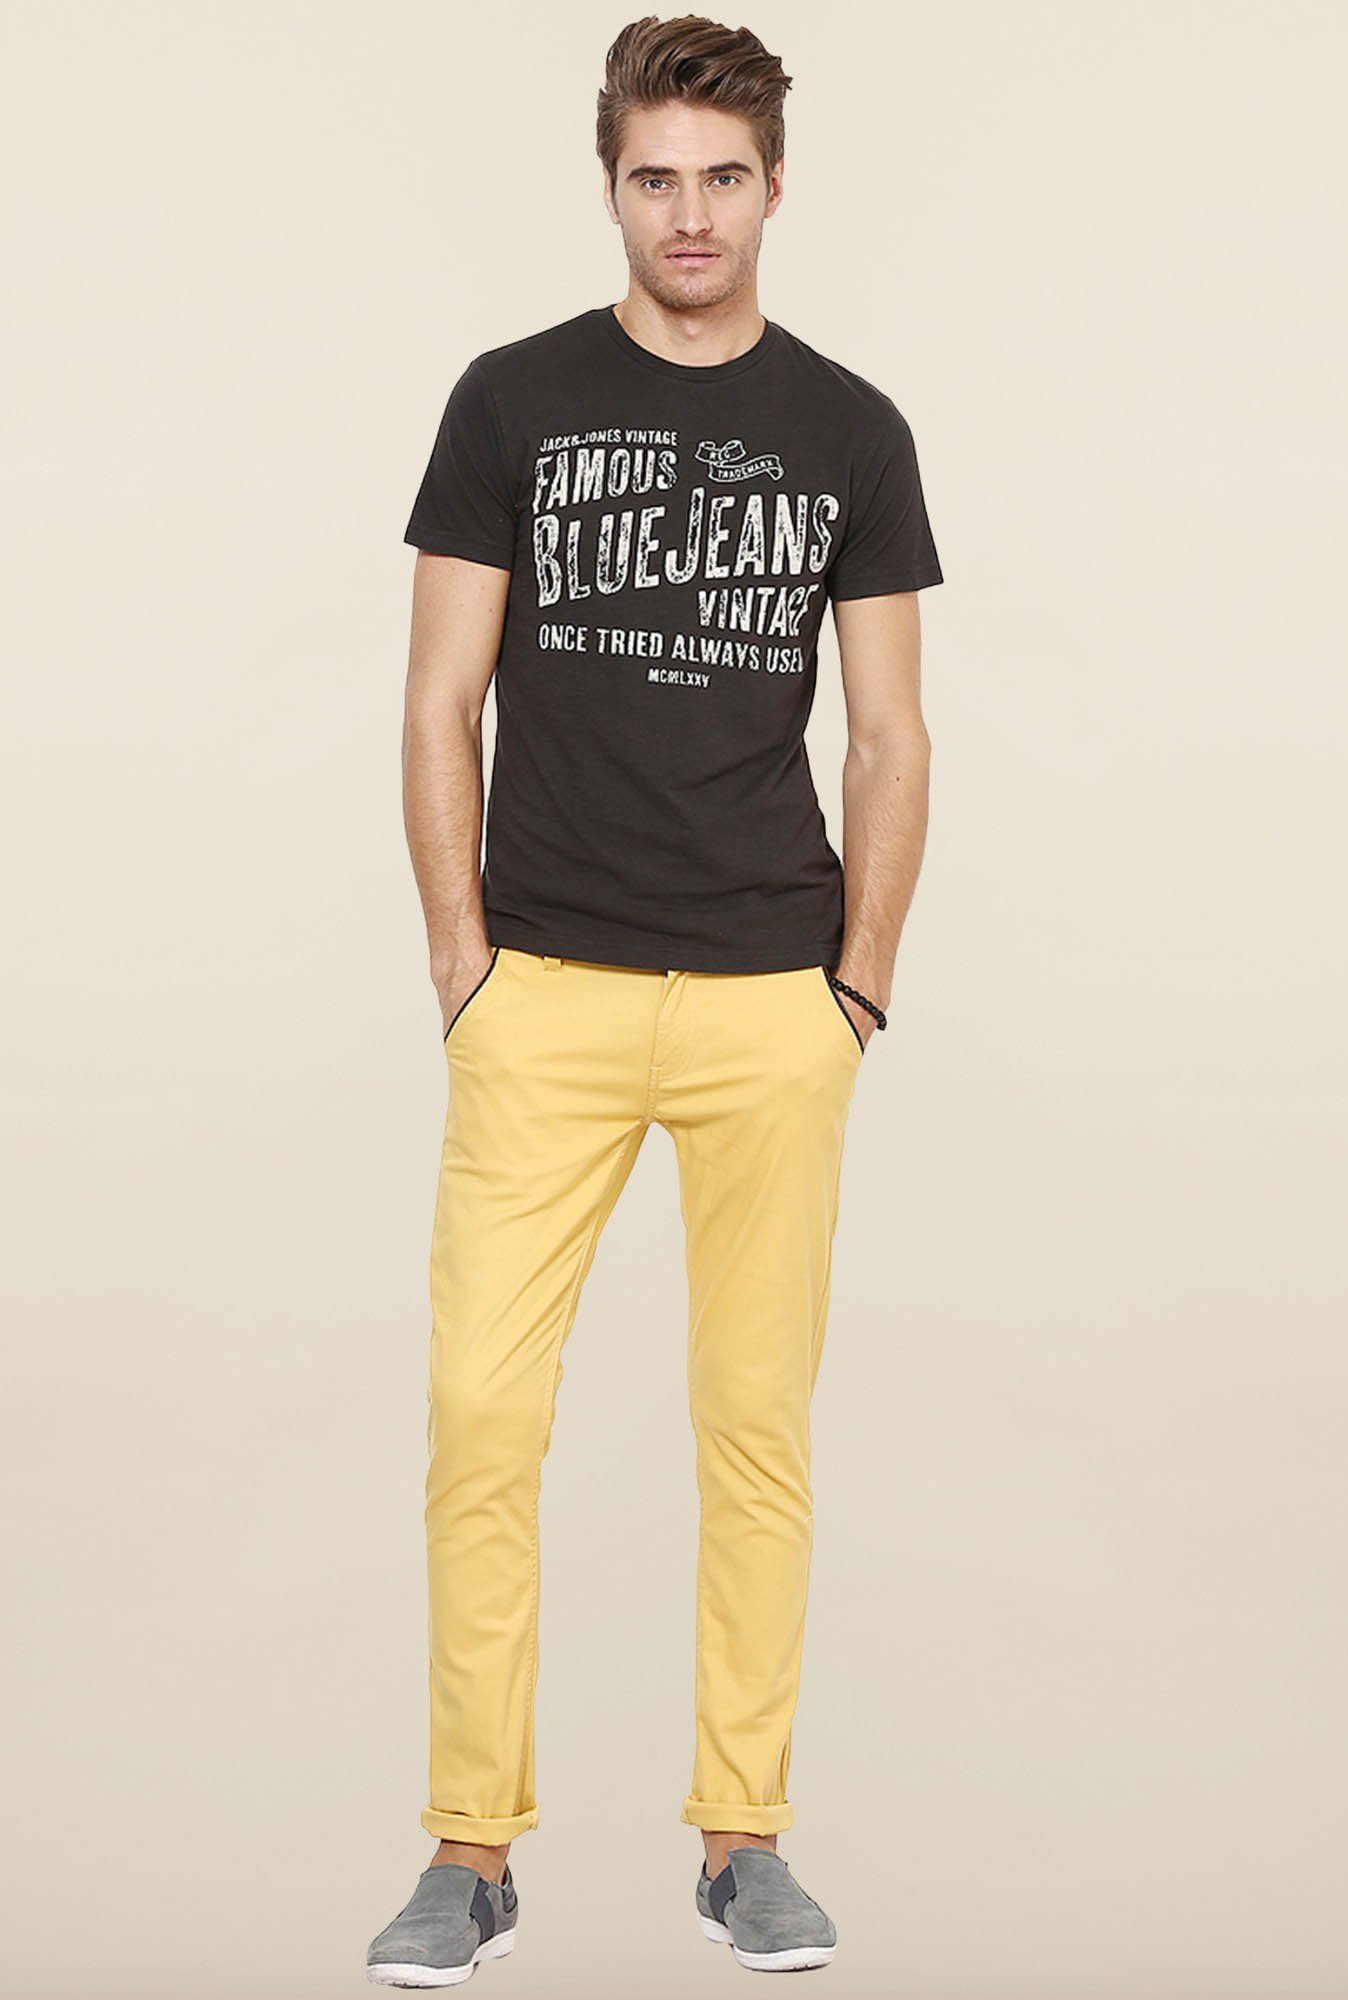 Jack & Jones Black Cotton T-Shirt